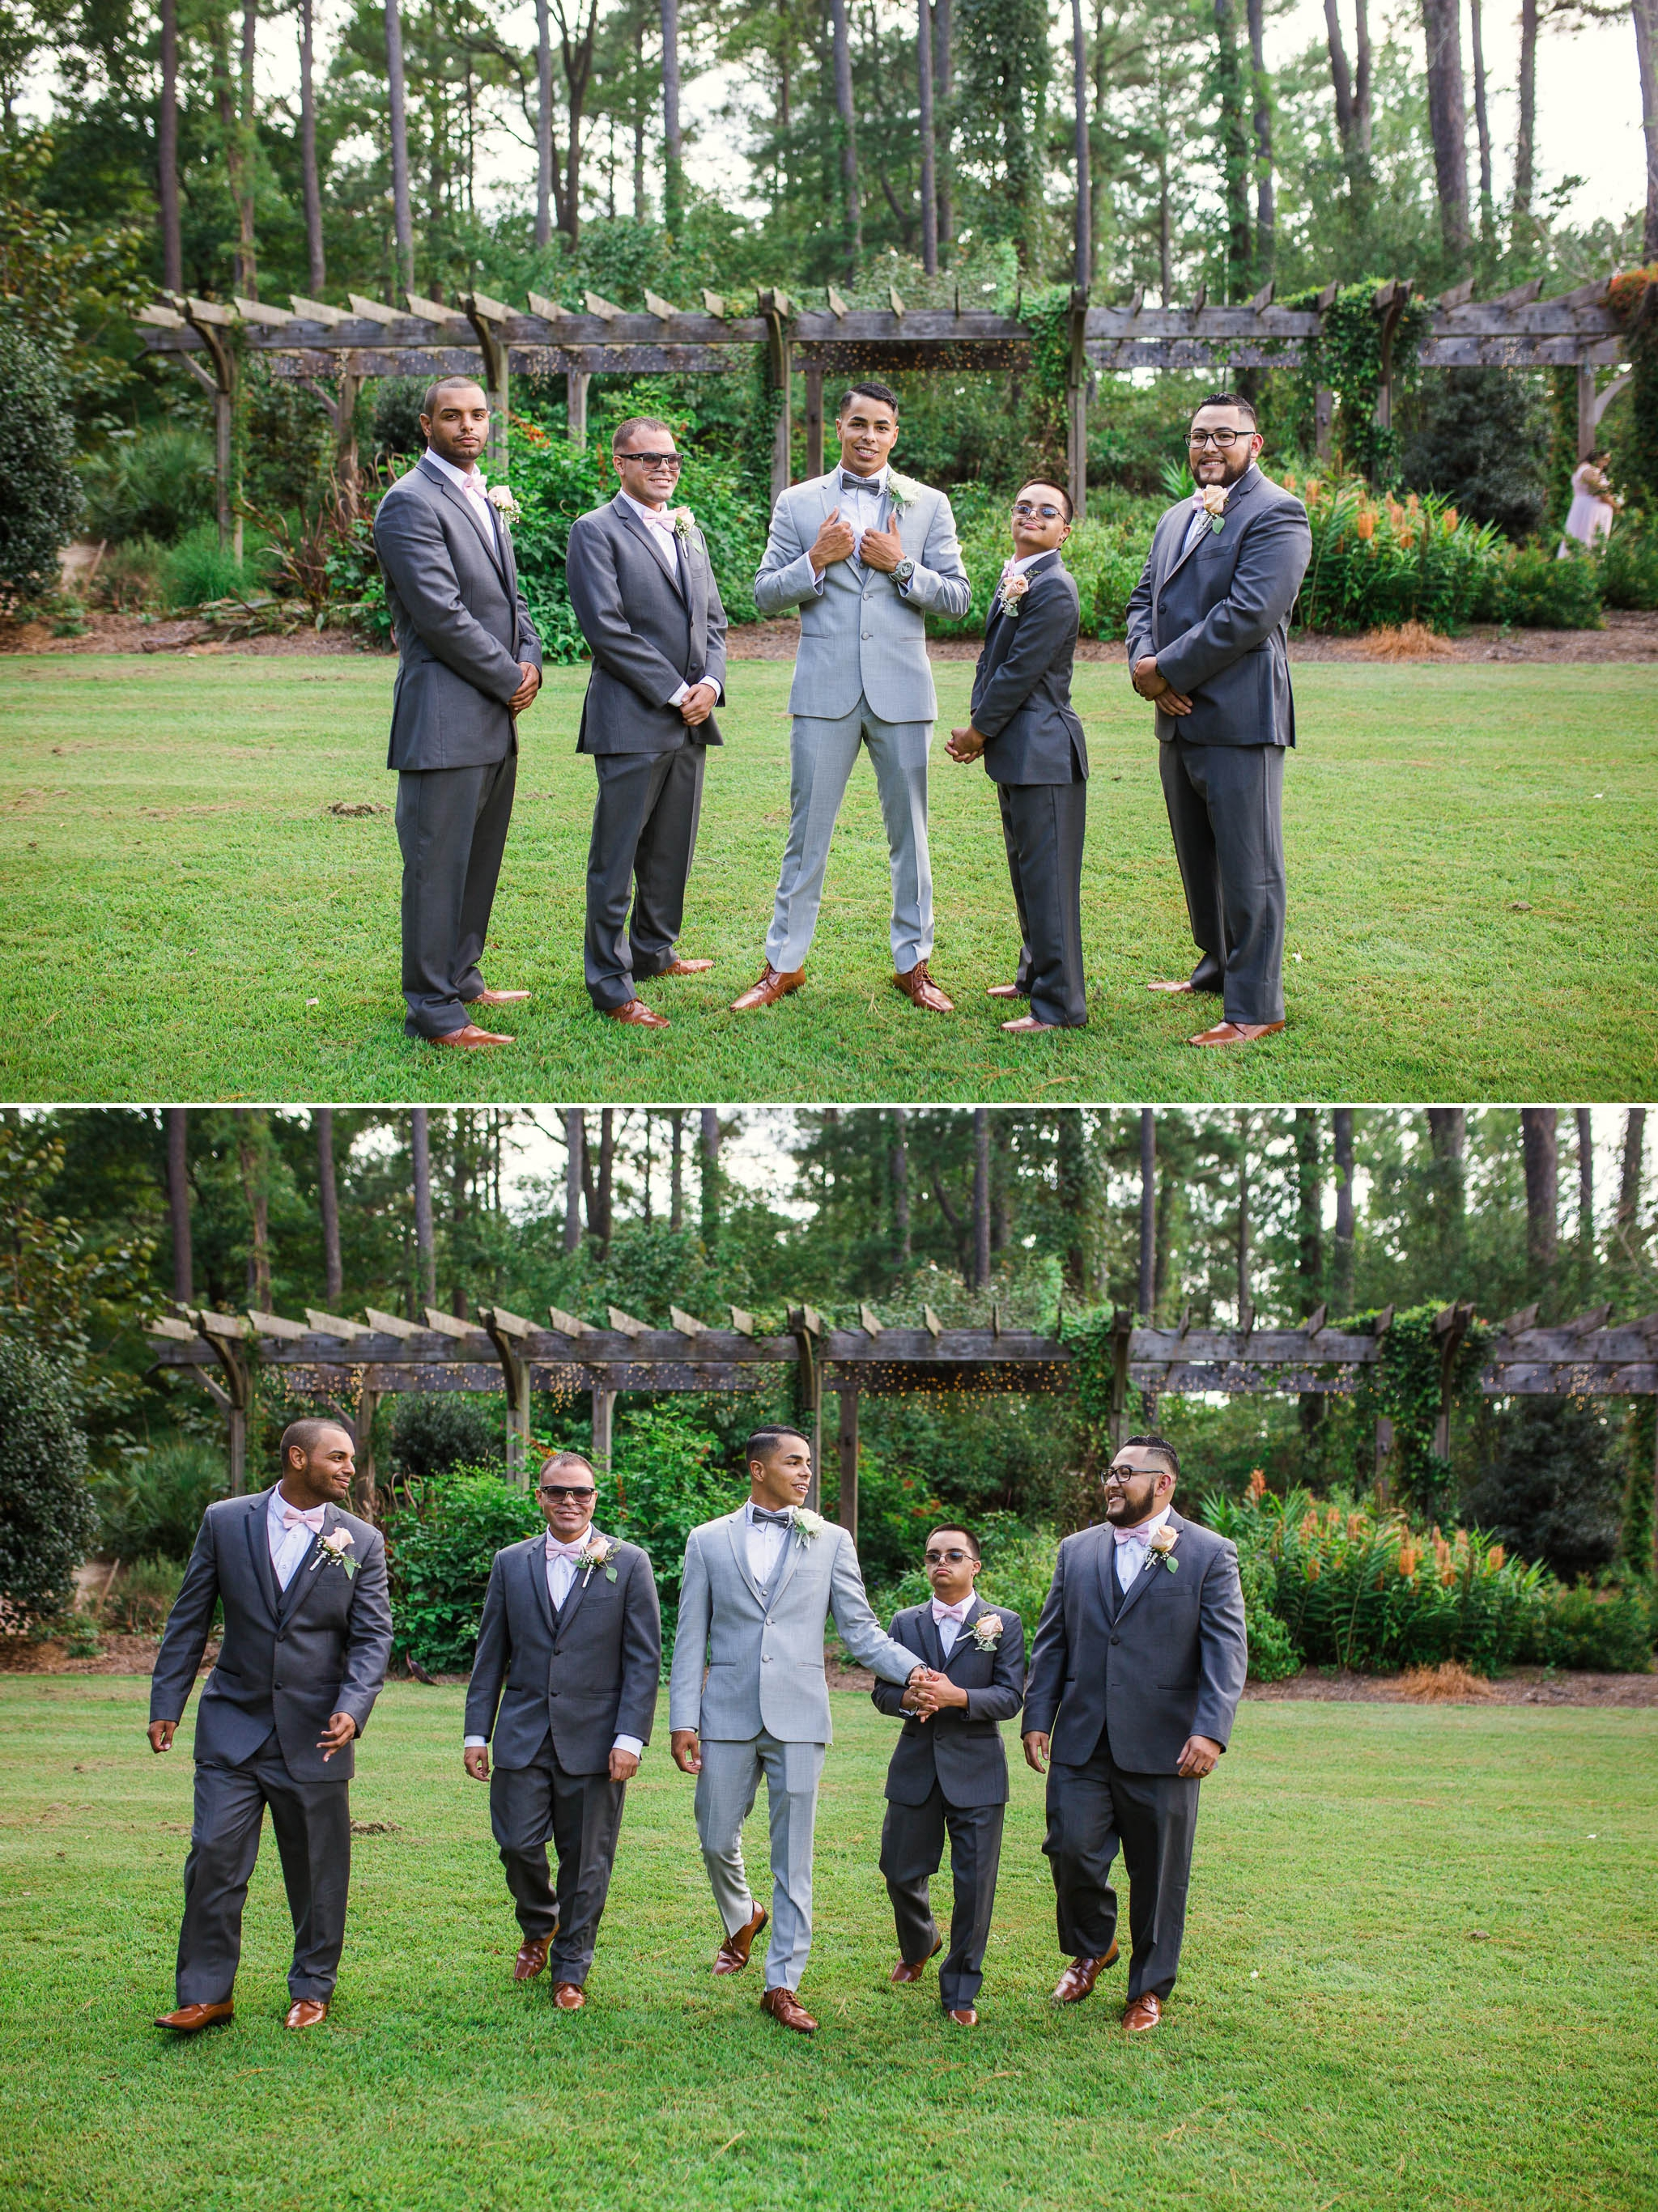 Groomsmen Portraits - Yansi + Eddie - Wedding at Cape Fear Botanical Garden - Fayetteville North Carolina Photographer